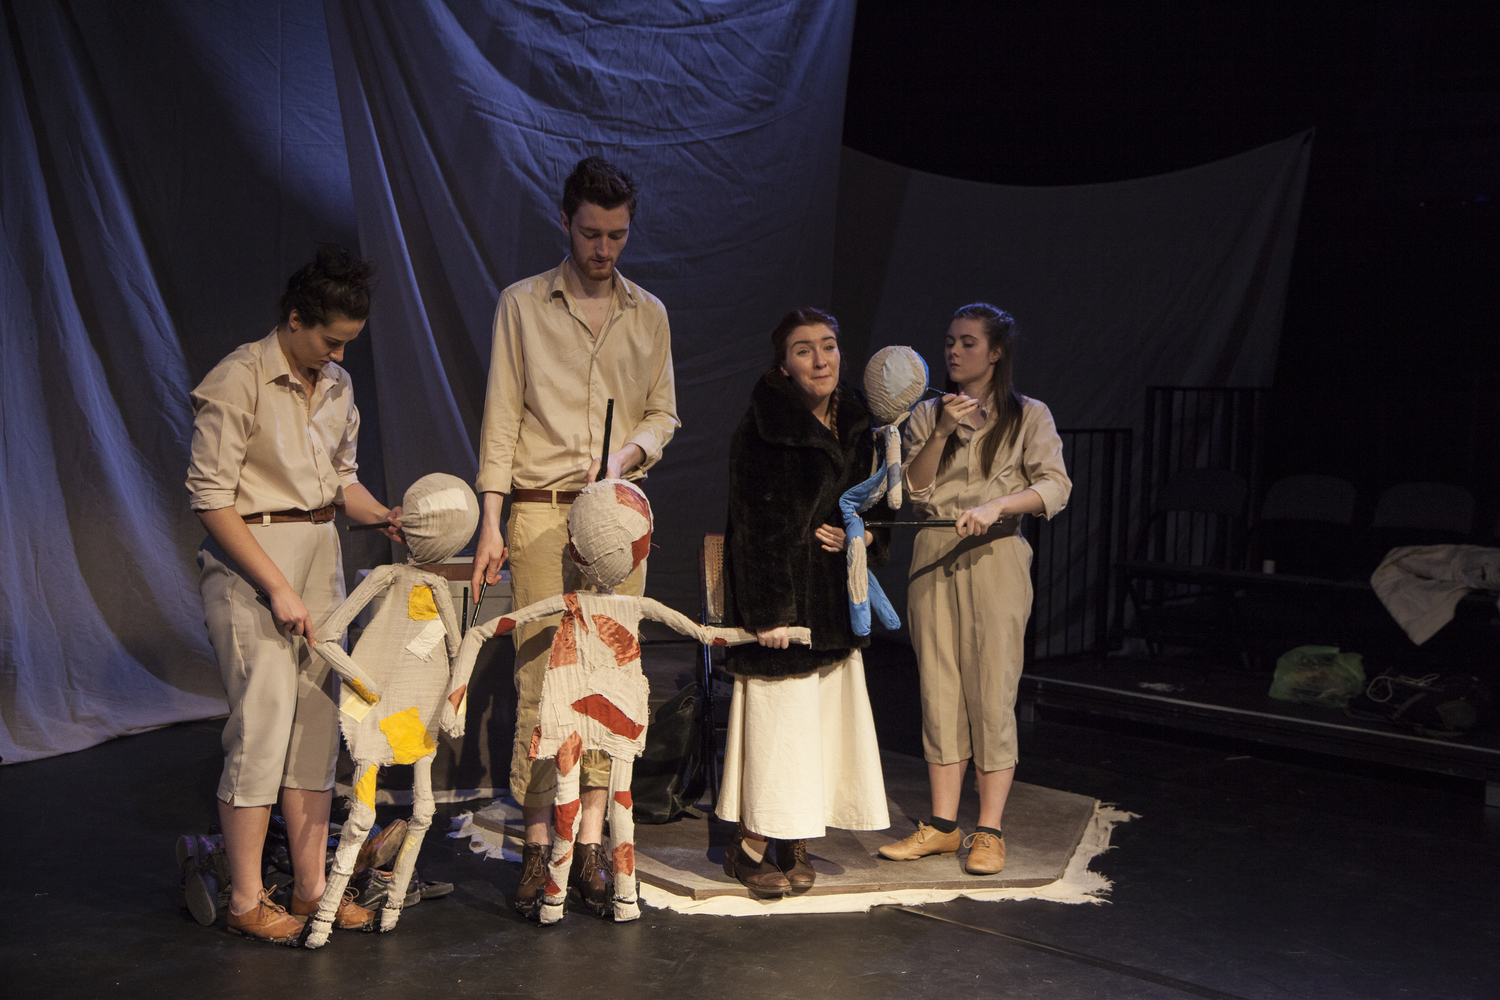 THE WHEEL - SET DESIGNER / PUPPET BUILDERBLACK BOX THEATRE, UNIVERSITY OF YORK (AUTUMN 2015)DIRECTED BY SAFFIA SAGE